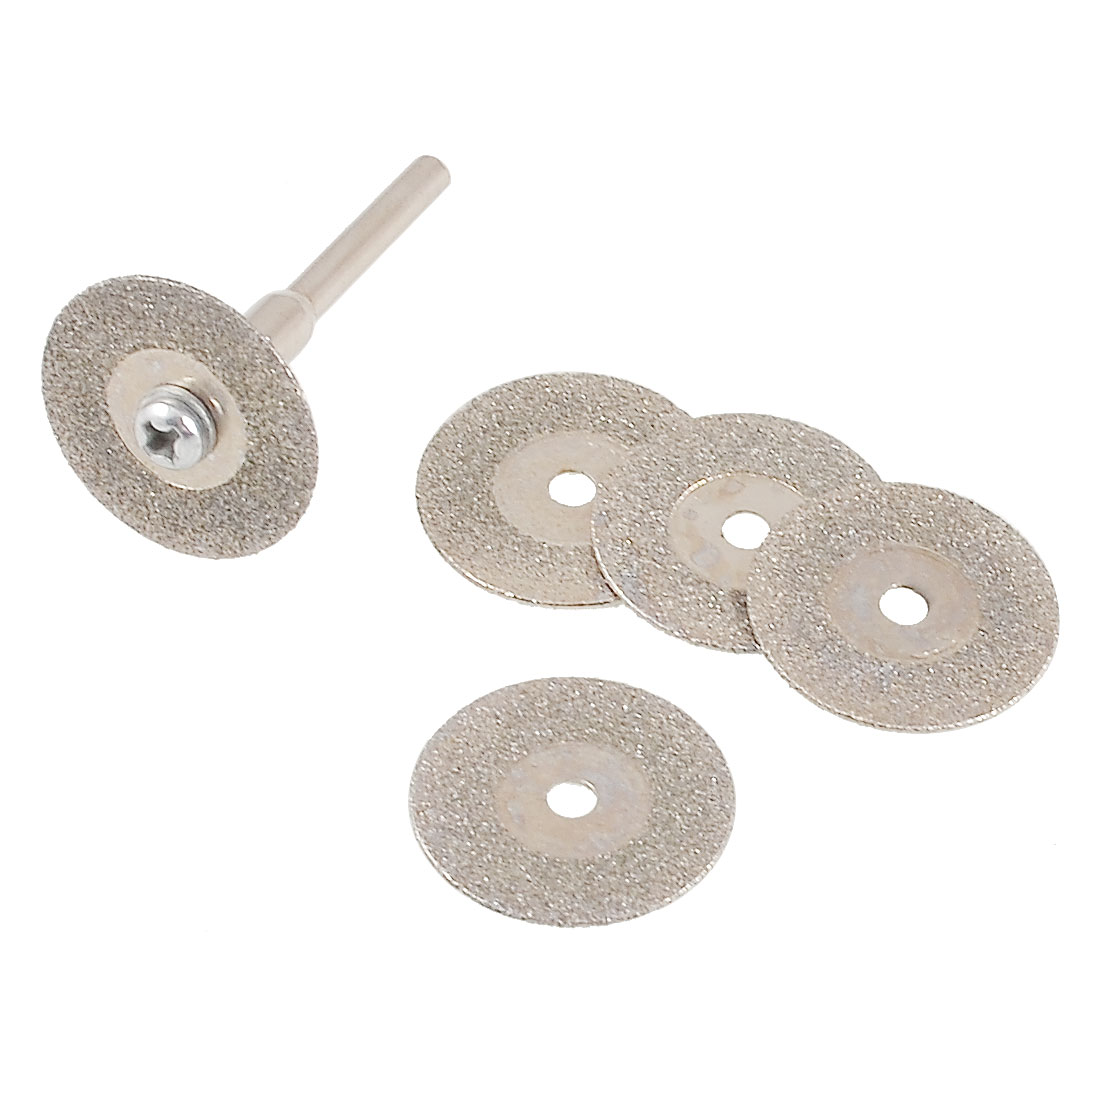 16mm Dia Mini Electric Grinder Abrasive Cutting Wheel 6 Pcs w Connector